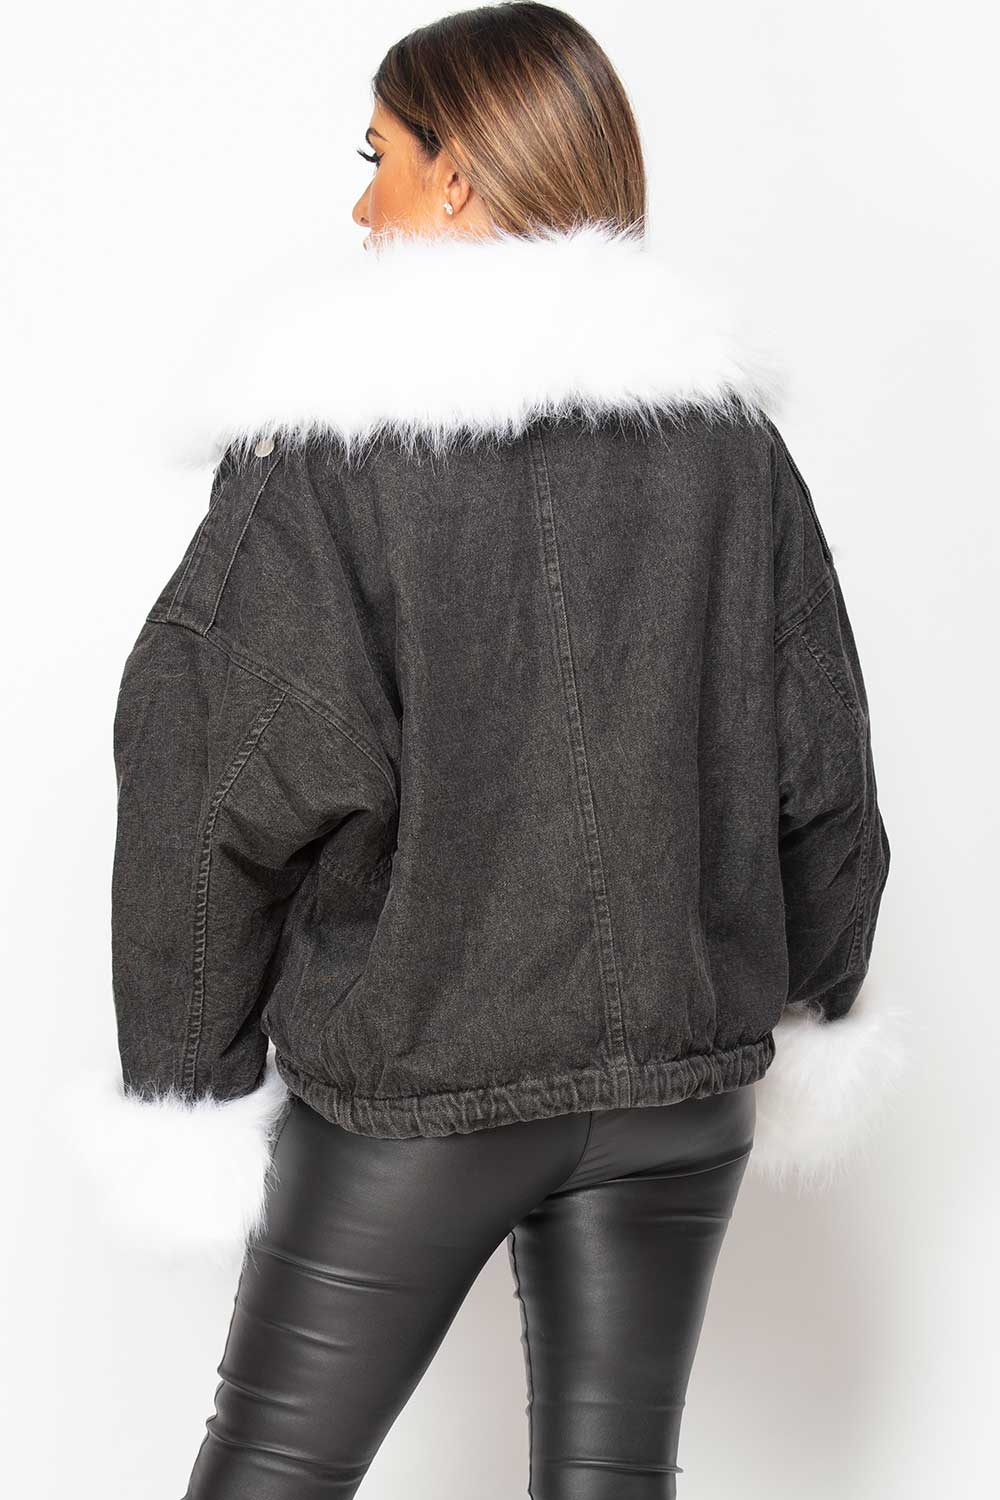 womens oversized black denim jacket with faux fur